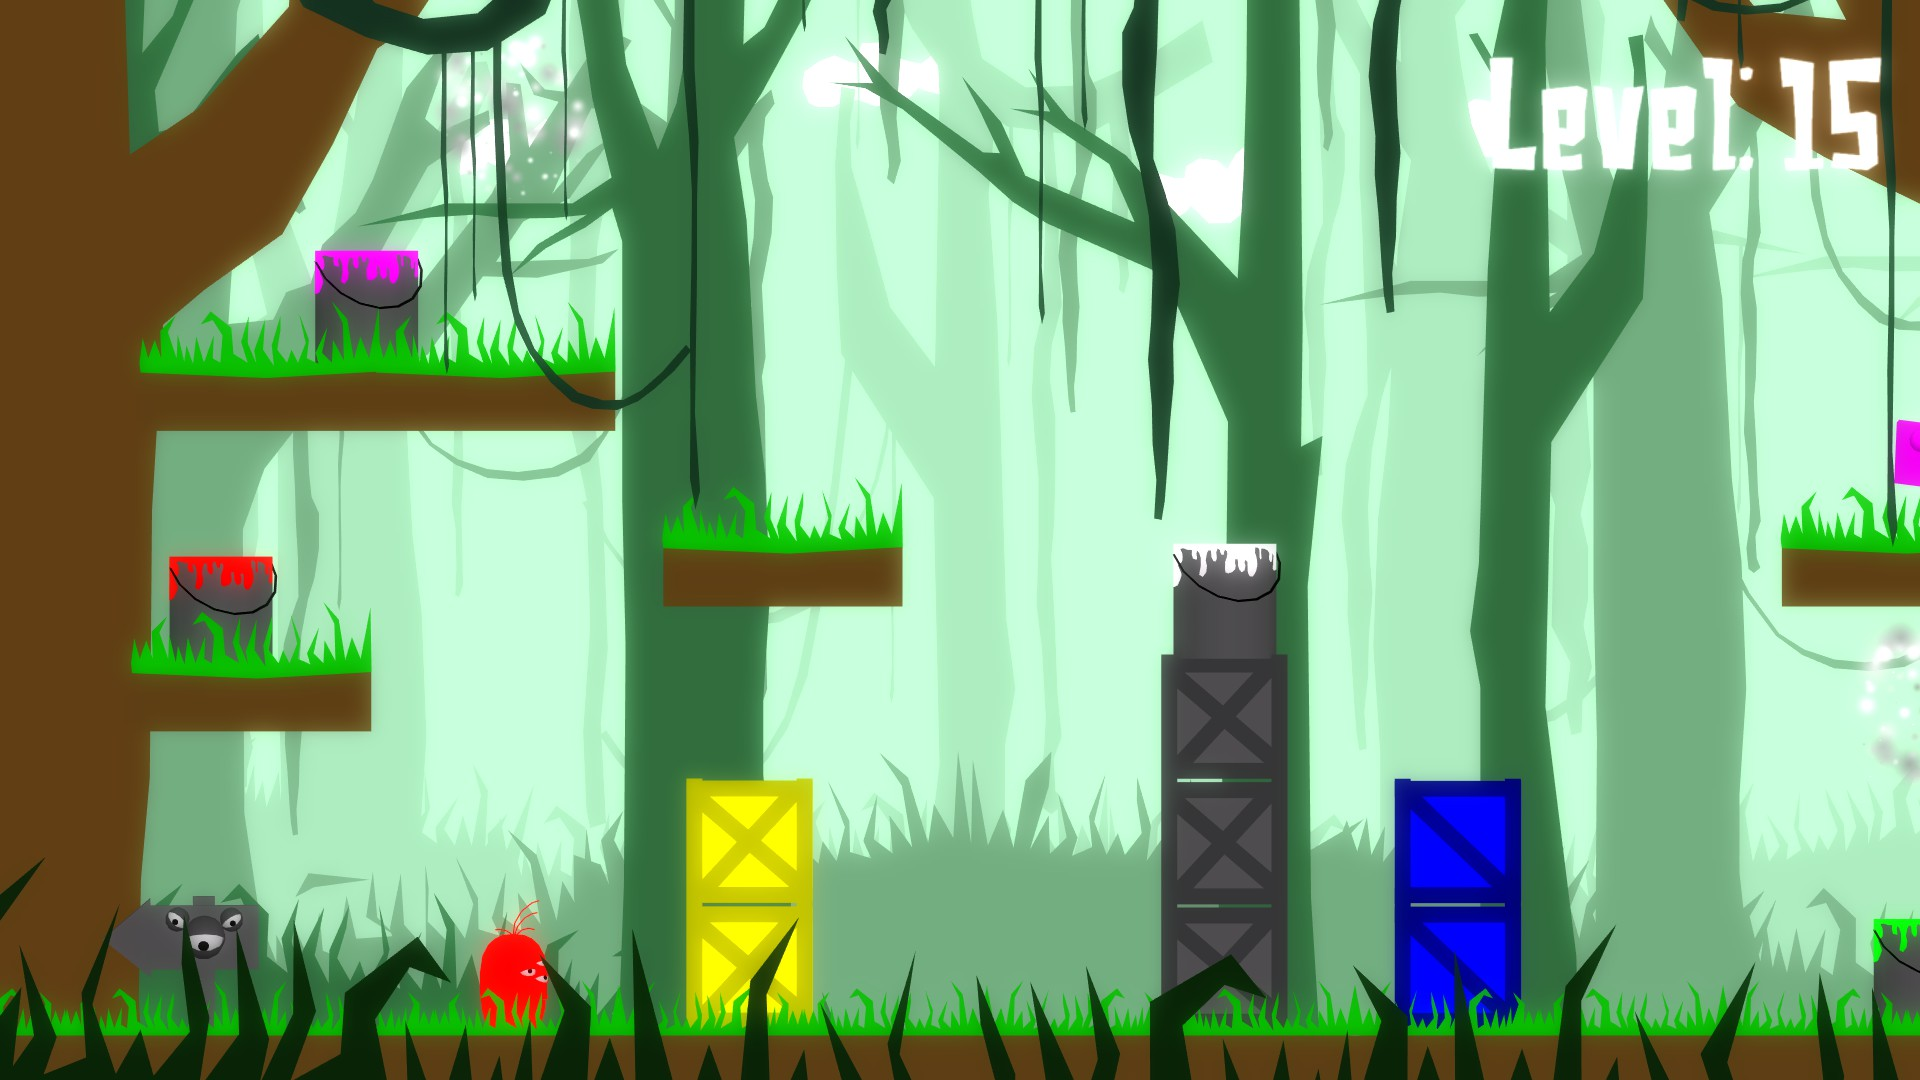 Level 15 of Coated, red character stands before yellow, grey, and blue stacked boxes. Red, white, and pink paint are available in the level. Getting the character to the end while pink is the goal.